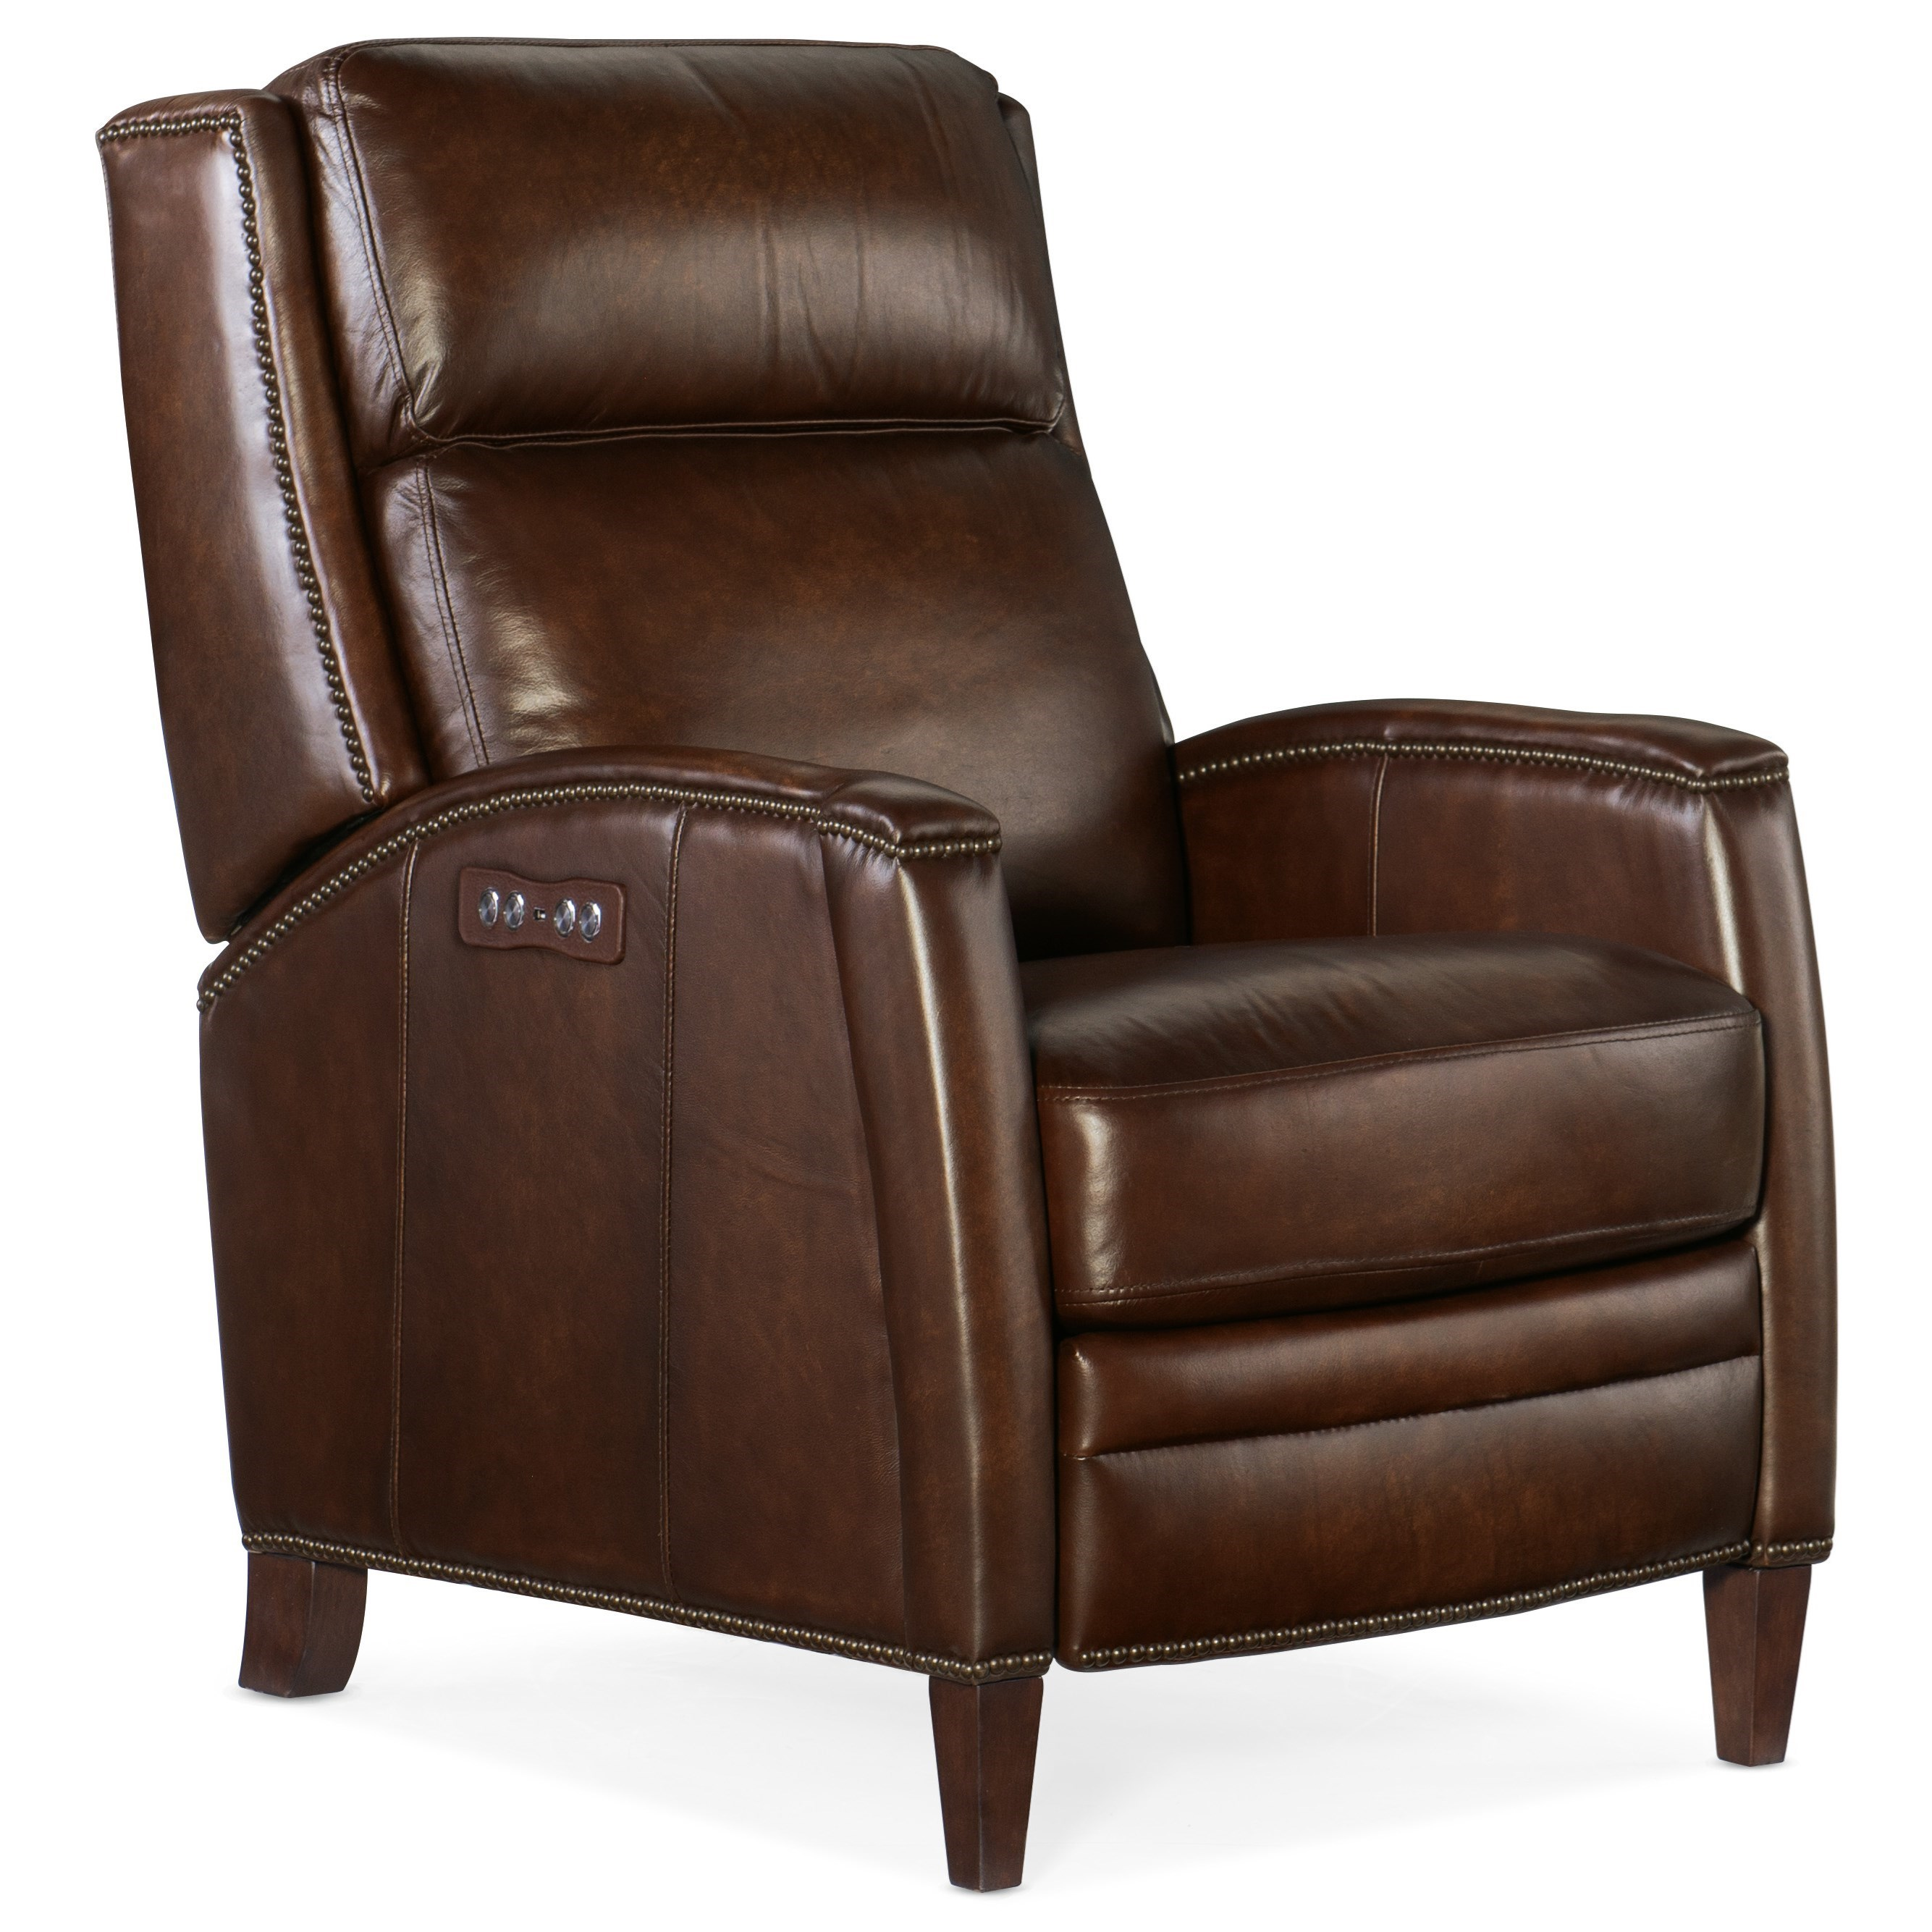 Declan Power Recliner w/ Power Headrest by Hooker Furniture at Johnny Janosik